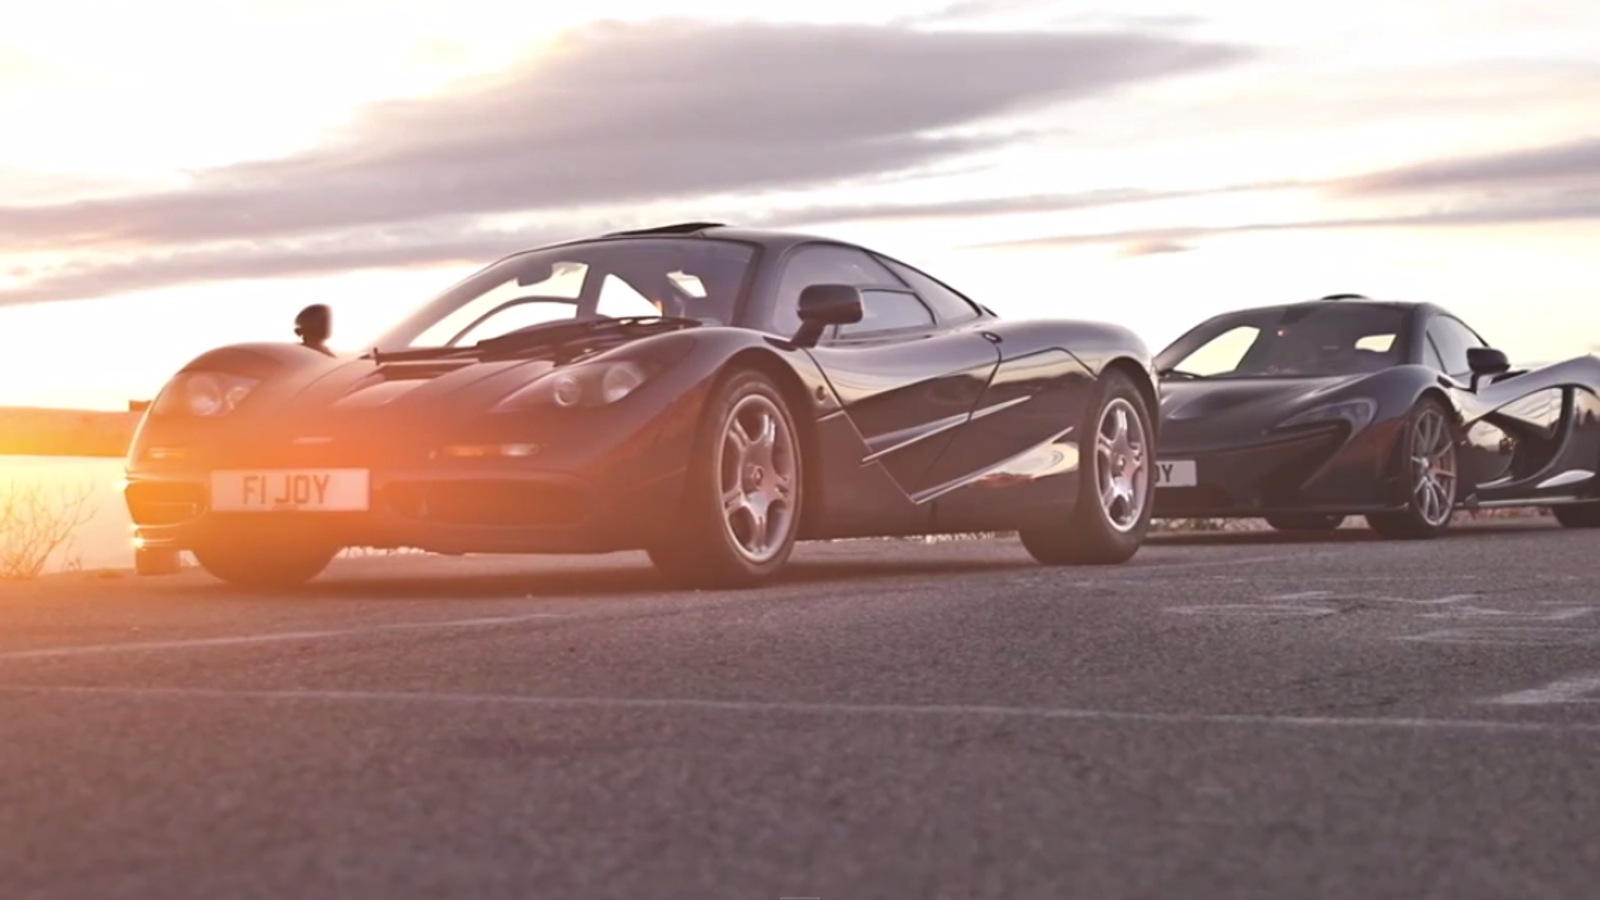 Mclaren F1 Vs P1 The Showdown You Ve Been Dreaming About